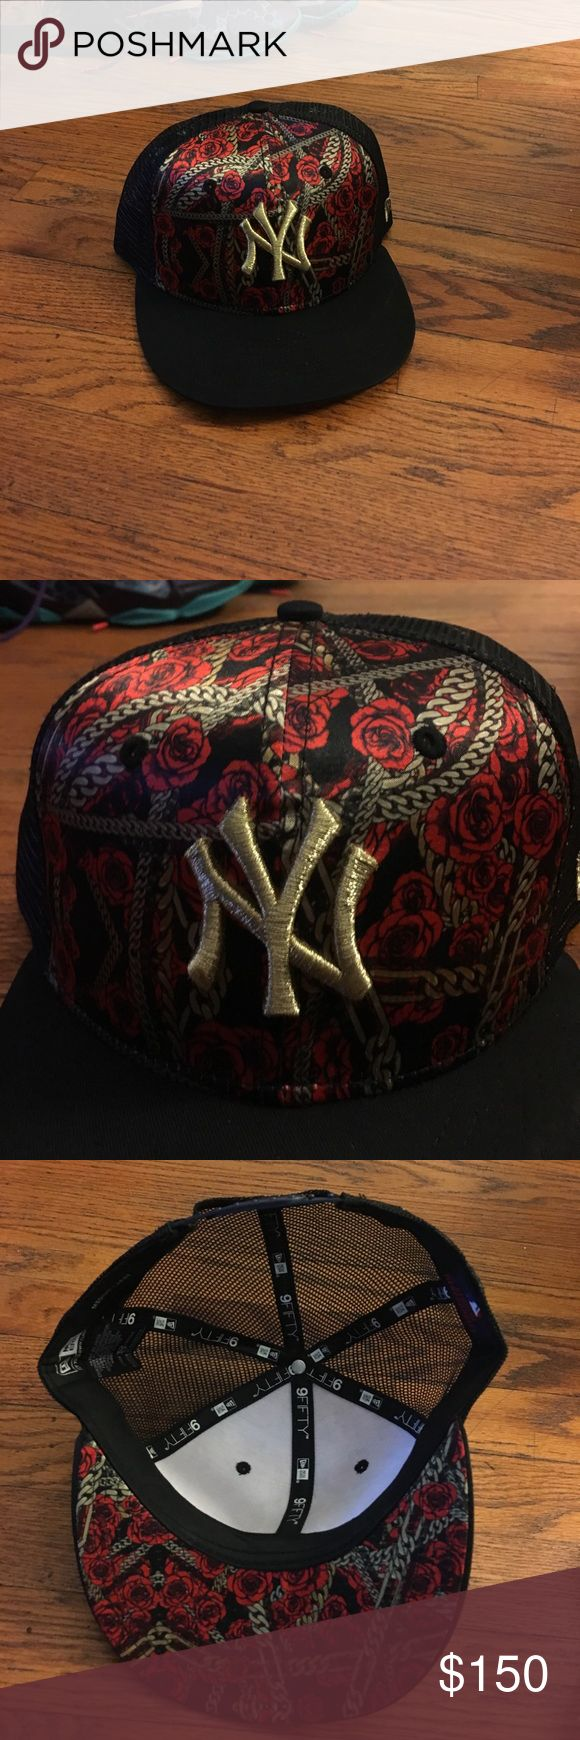 Rapper 2 chains and new era colab This is a rare exclusive New York Yankees new era 2 chains colab this hat has been worn by several stars (Gucci mane, 2 chains, Chris brown) this hat is sold out everywhere don't miss out New Era Accessories Hats